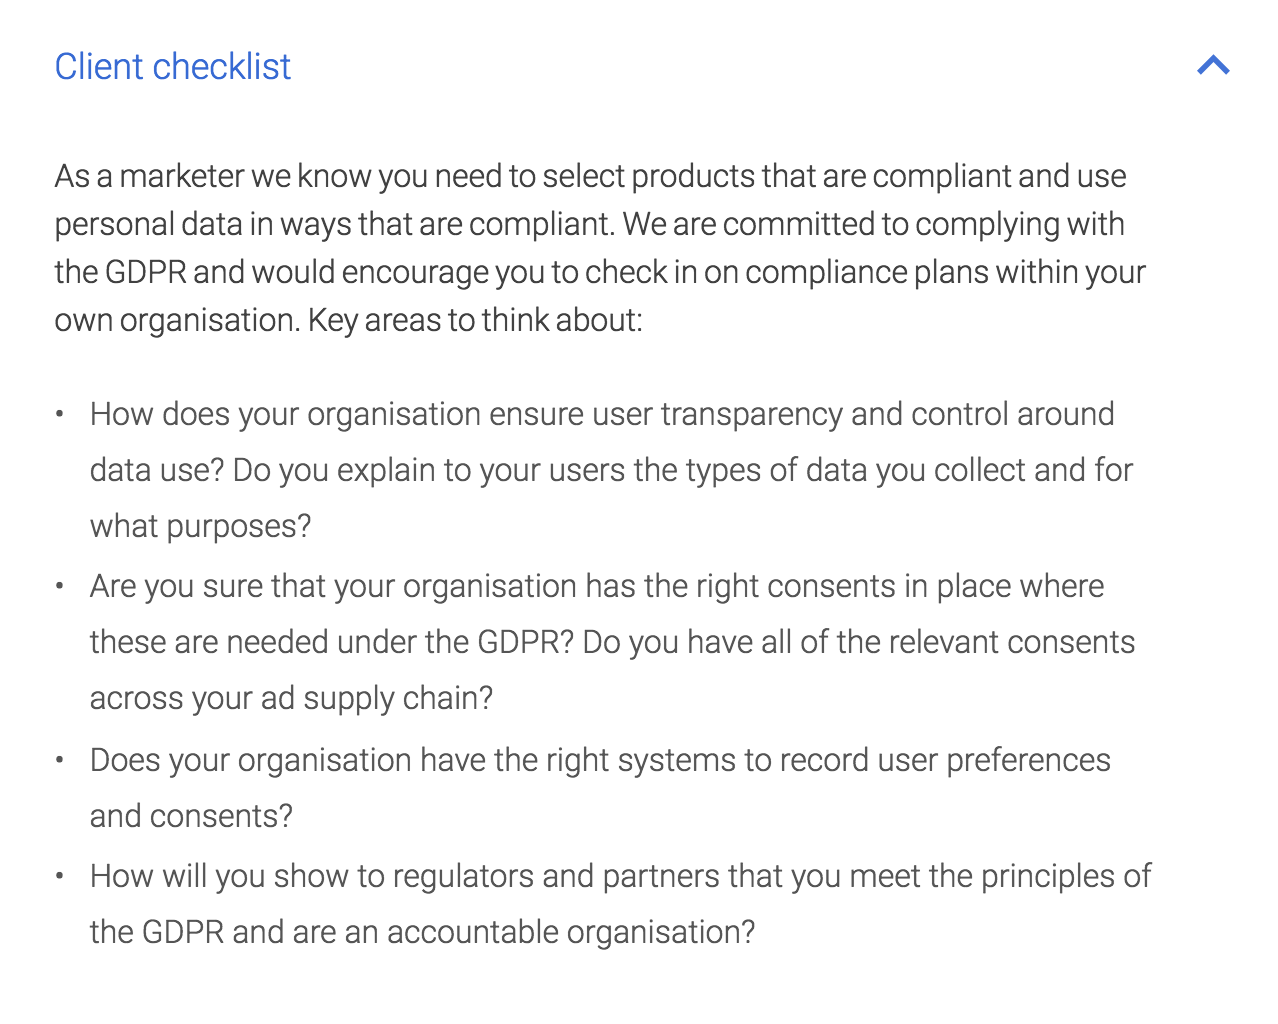 How does your organisation ensure user transparency and control around data use? Do you explain to your users the types of data you collect and for what purposes? Are you sure that your organisation has the right consents in place where these are needed under the GDPR? Do you have all of the relevant consents across your ad supply chain? Does your organisation have the right systems to record user preferences and consents? How will you show to regulators and partners that you meet the principles of the GDPR and are an accountable organisation?